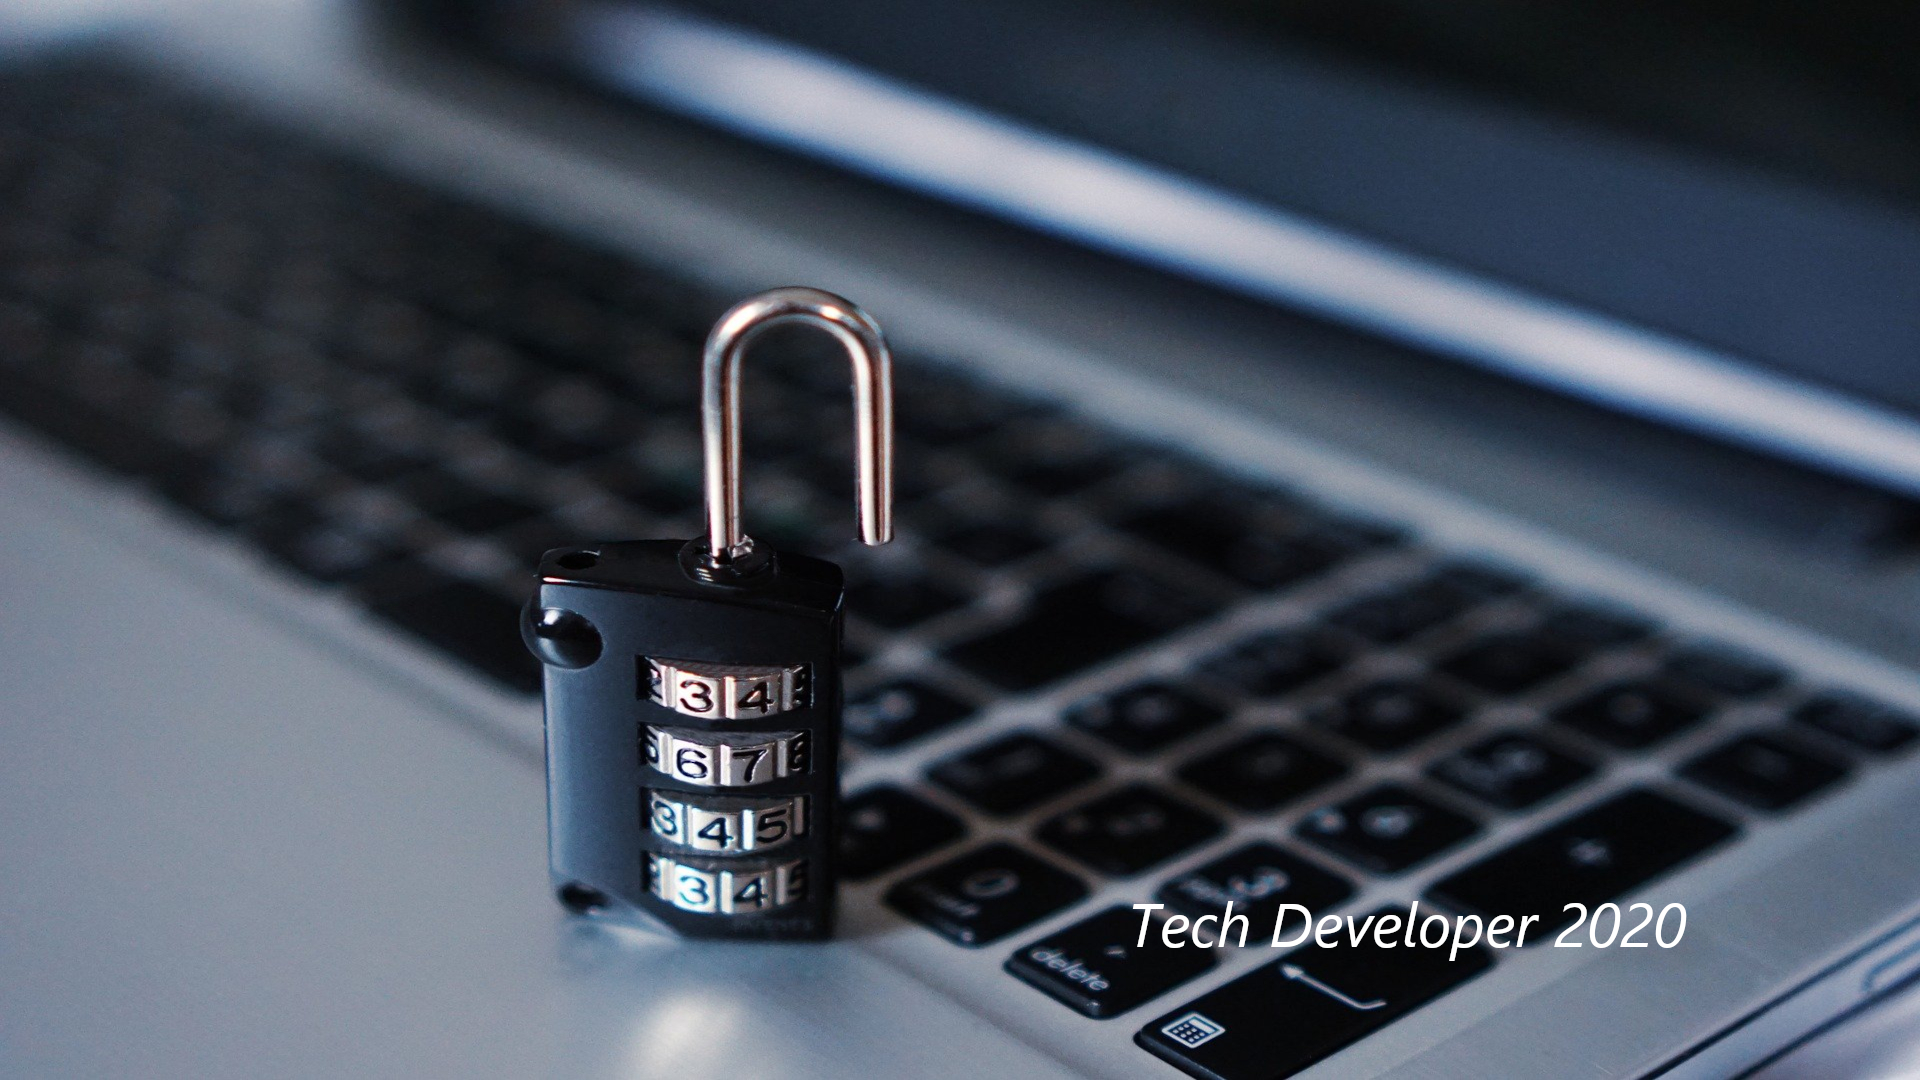 Implementato un nuovo sistema di sicurezza – Tech Developer 2020